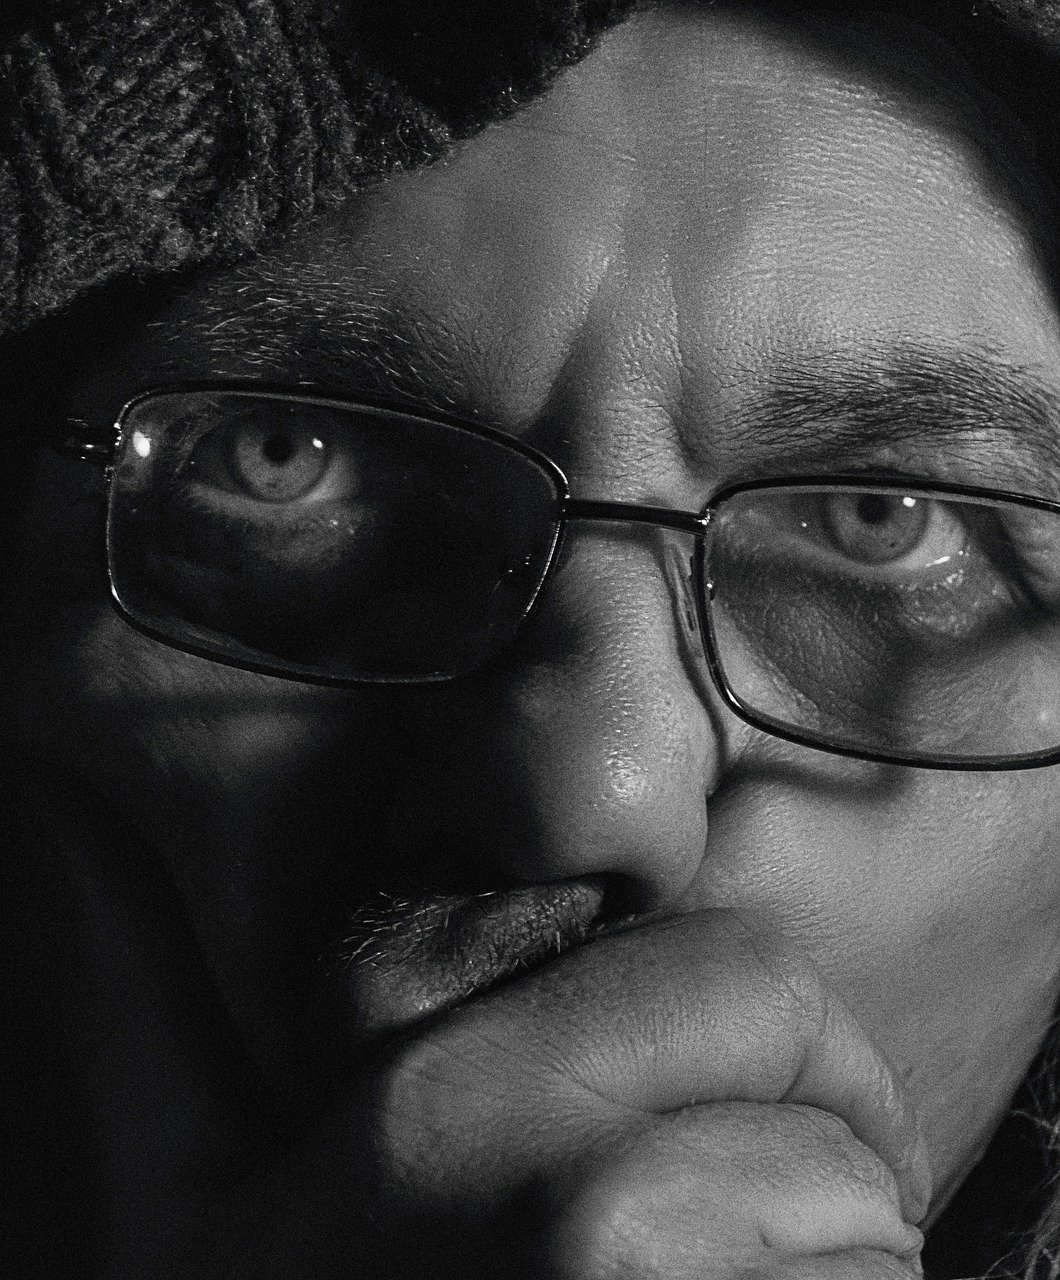 A black-and-white close-up image of a shocked man covering his mouth while wearing glasses and a hat | Photo: Pixabay/Alexander Krivitskiy